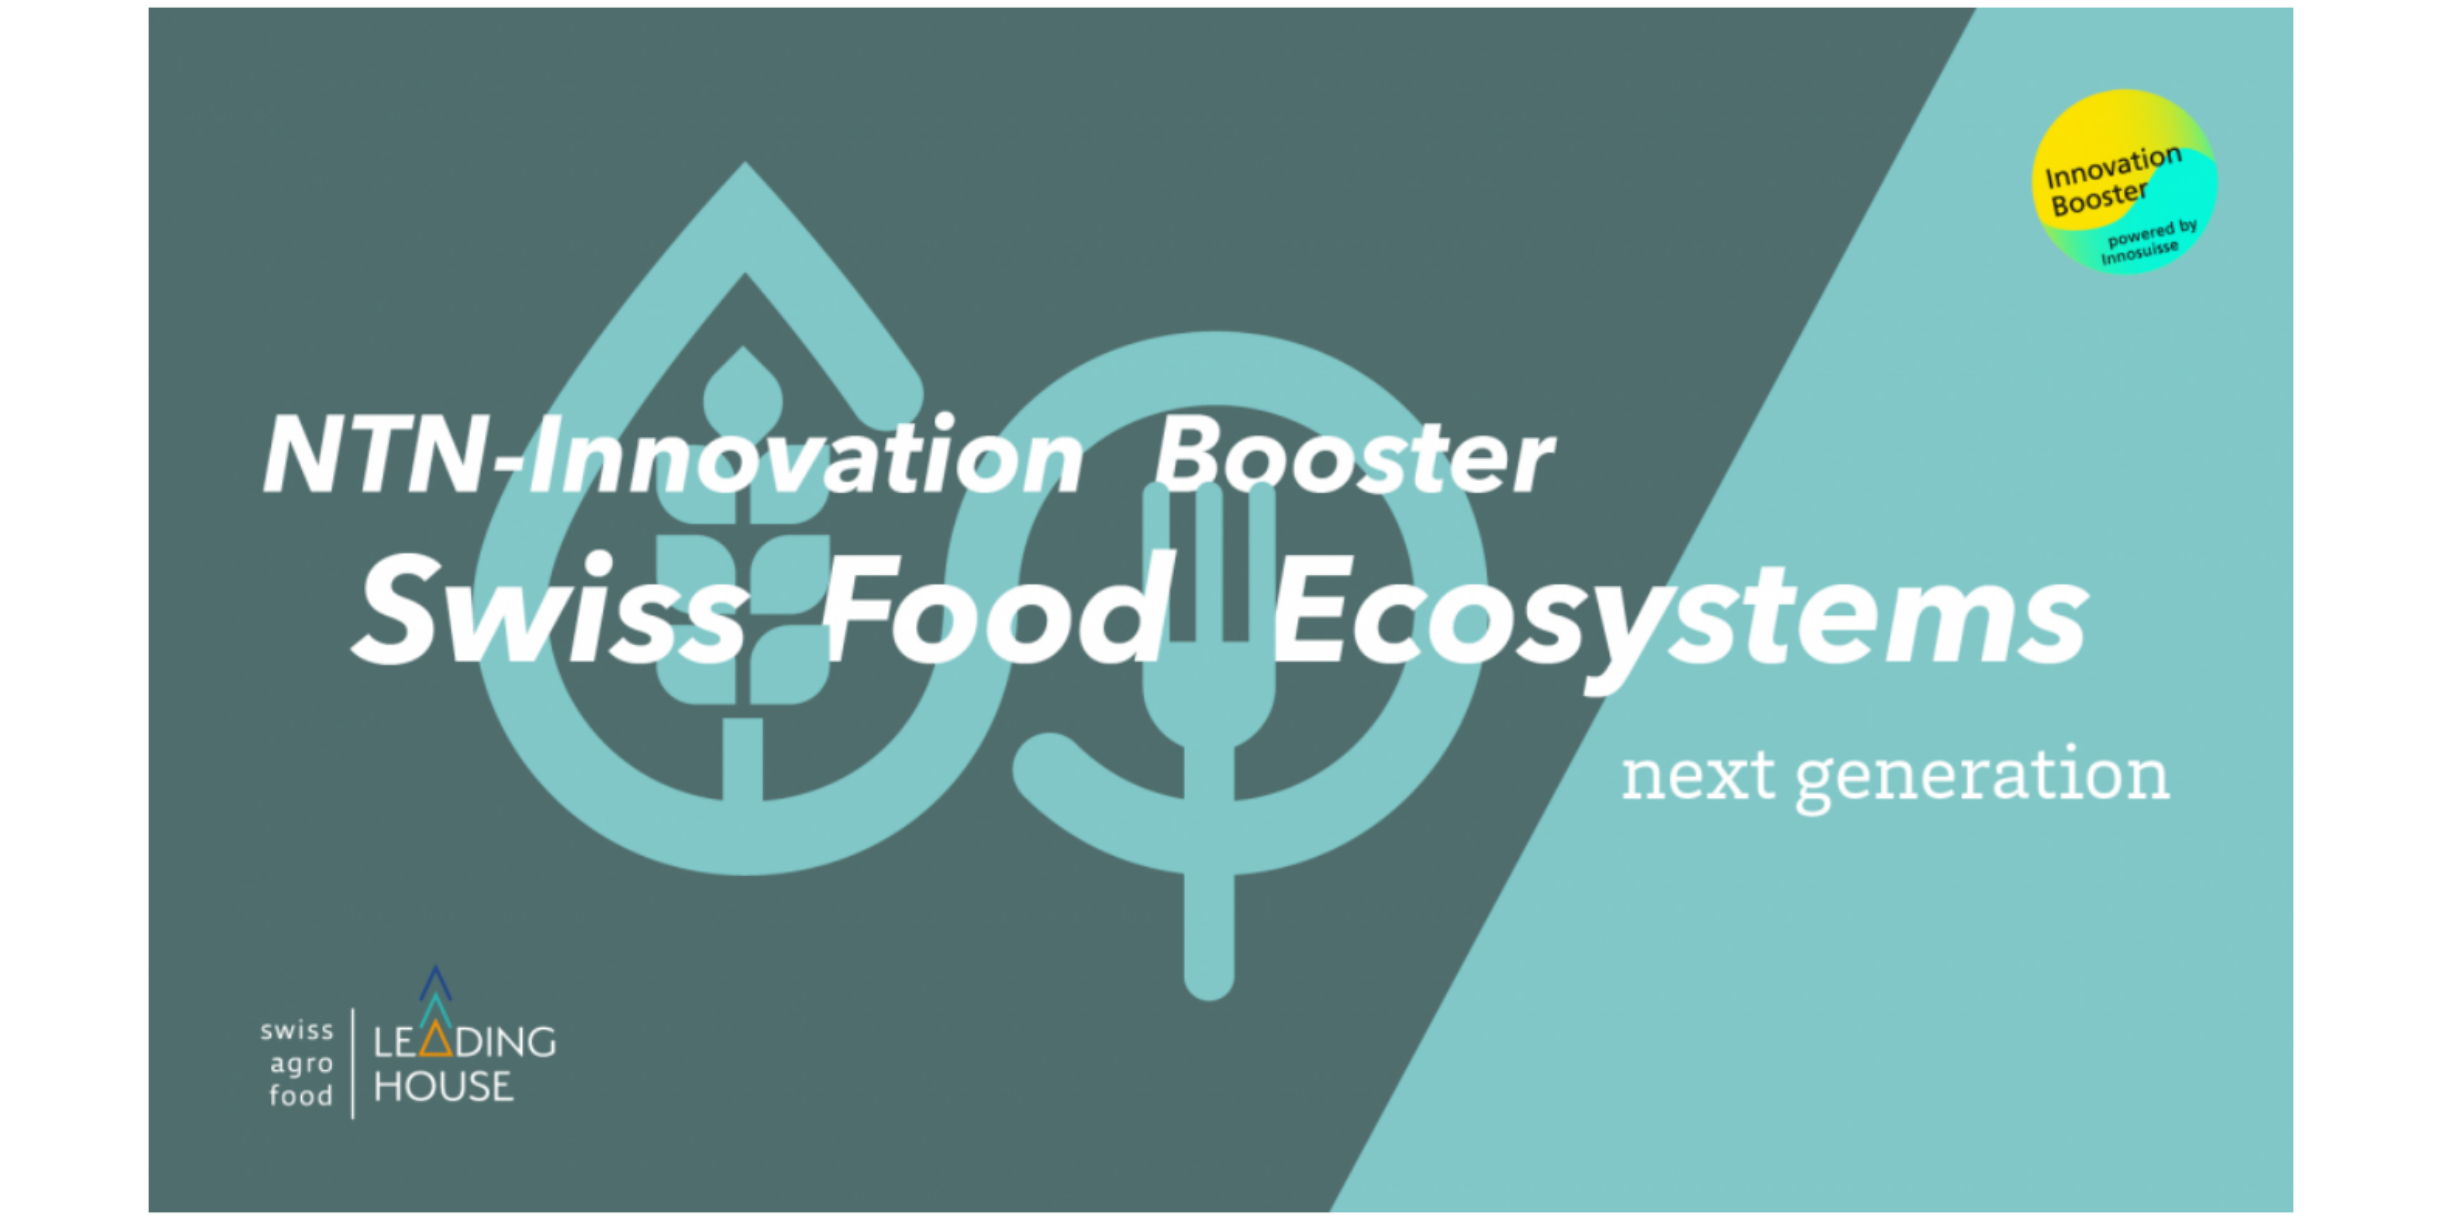 Swiss Food Ecosystems